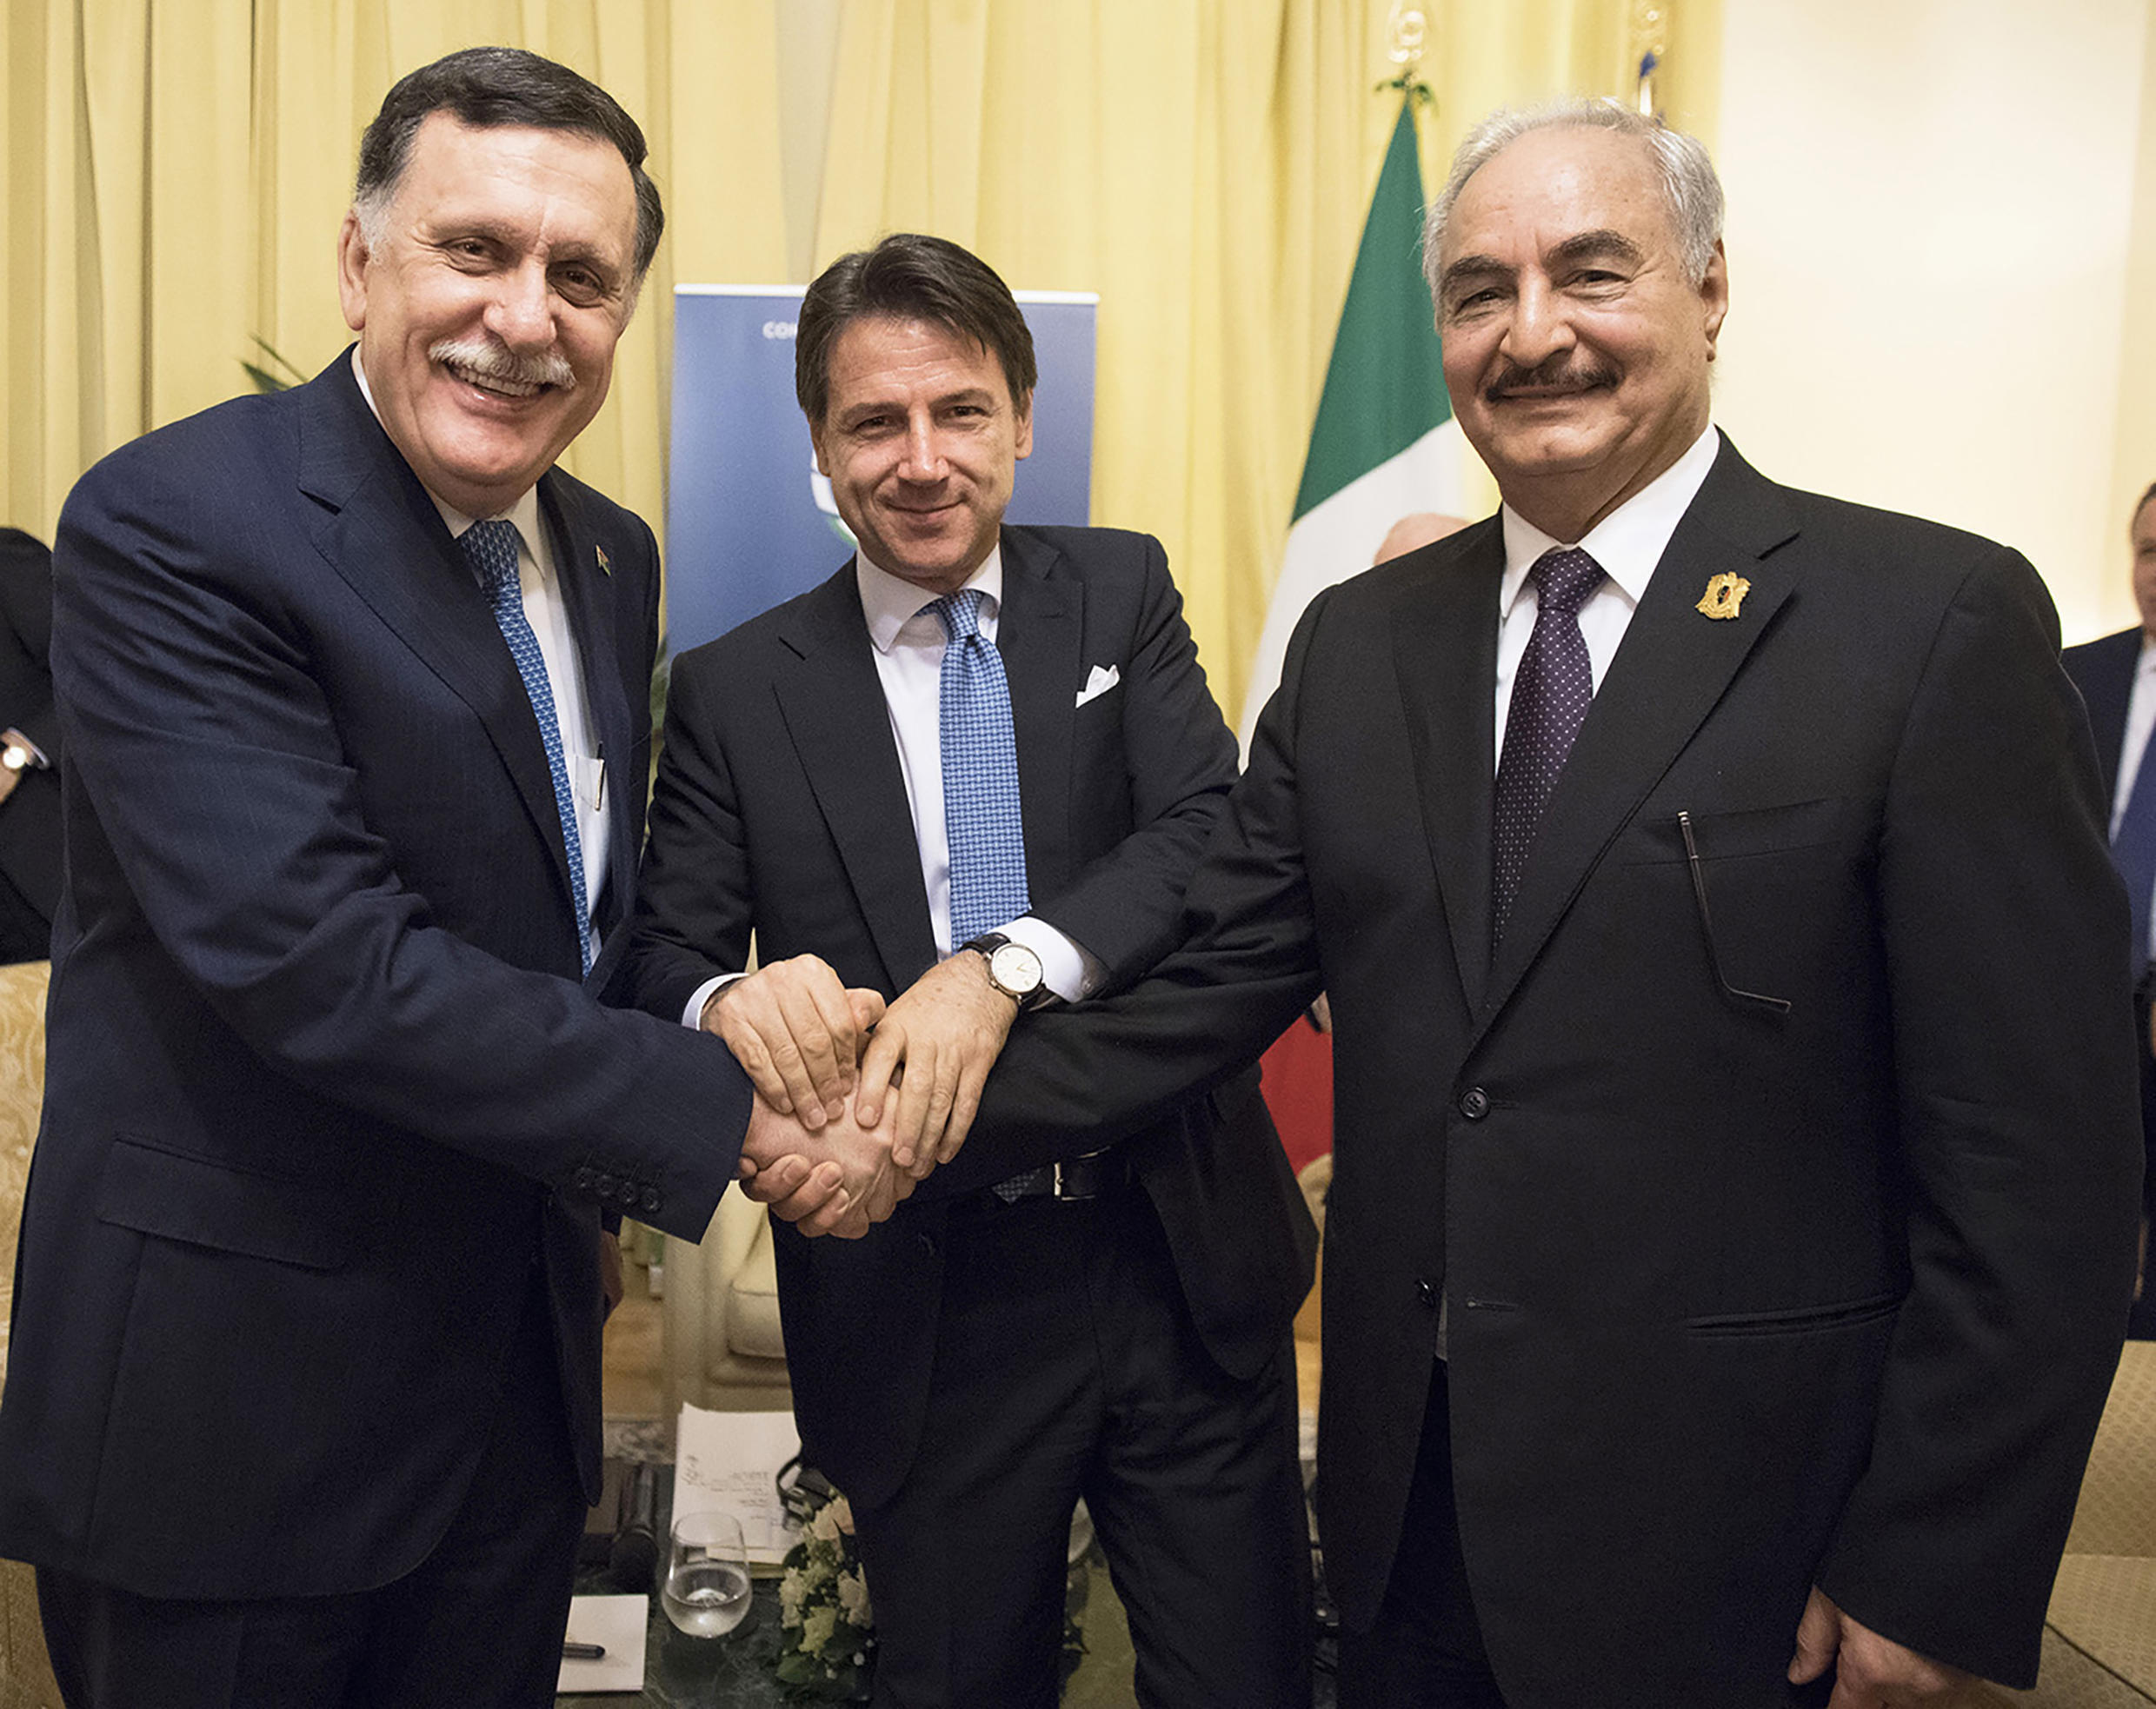 Fayez al-Sarraj (left) and Khalifa Haftar (right) pose for a photo with Italian Prime Minister Giuseppe Conte (centre) during a meeting in Palermo on 13 November 2018.